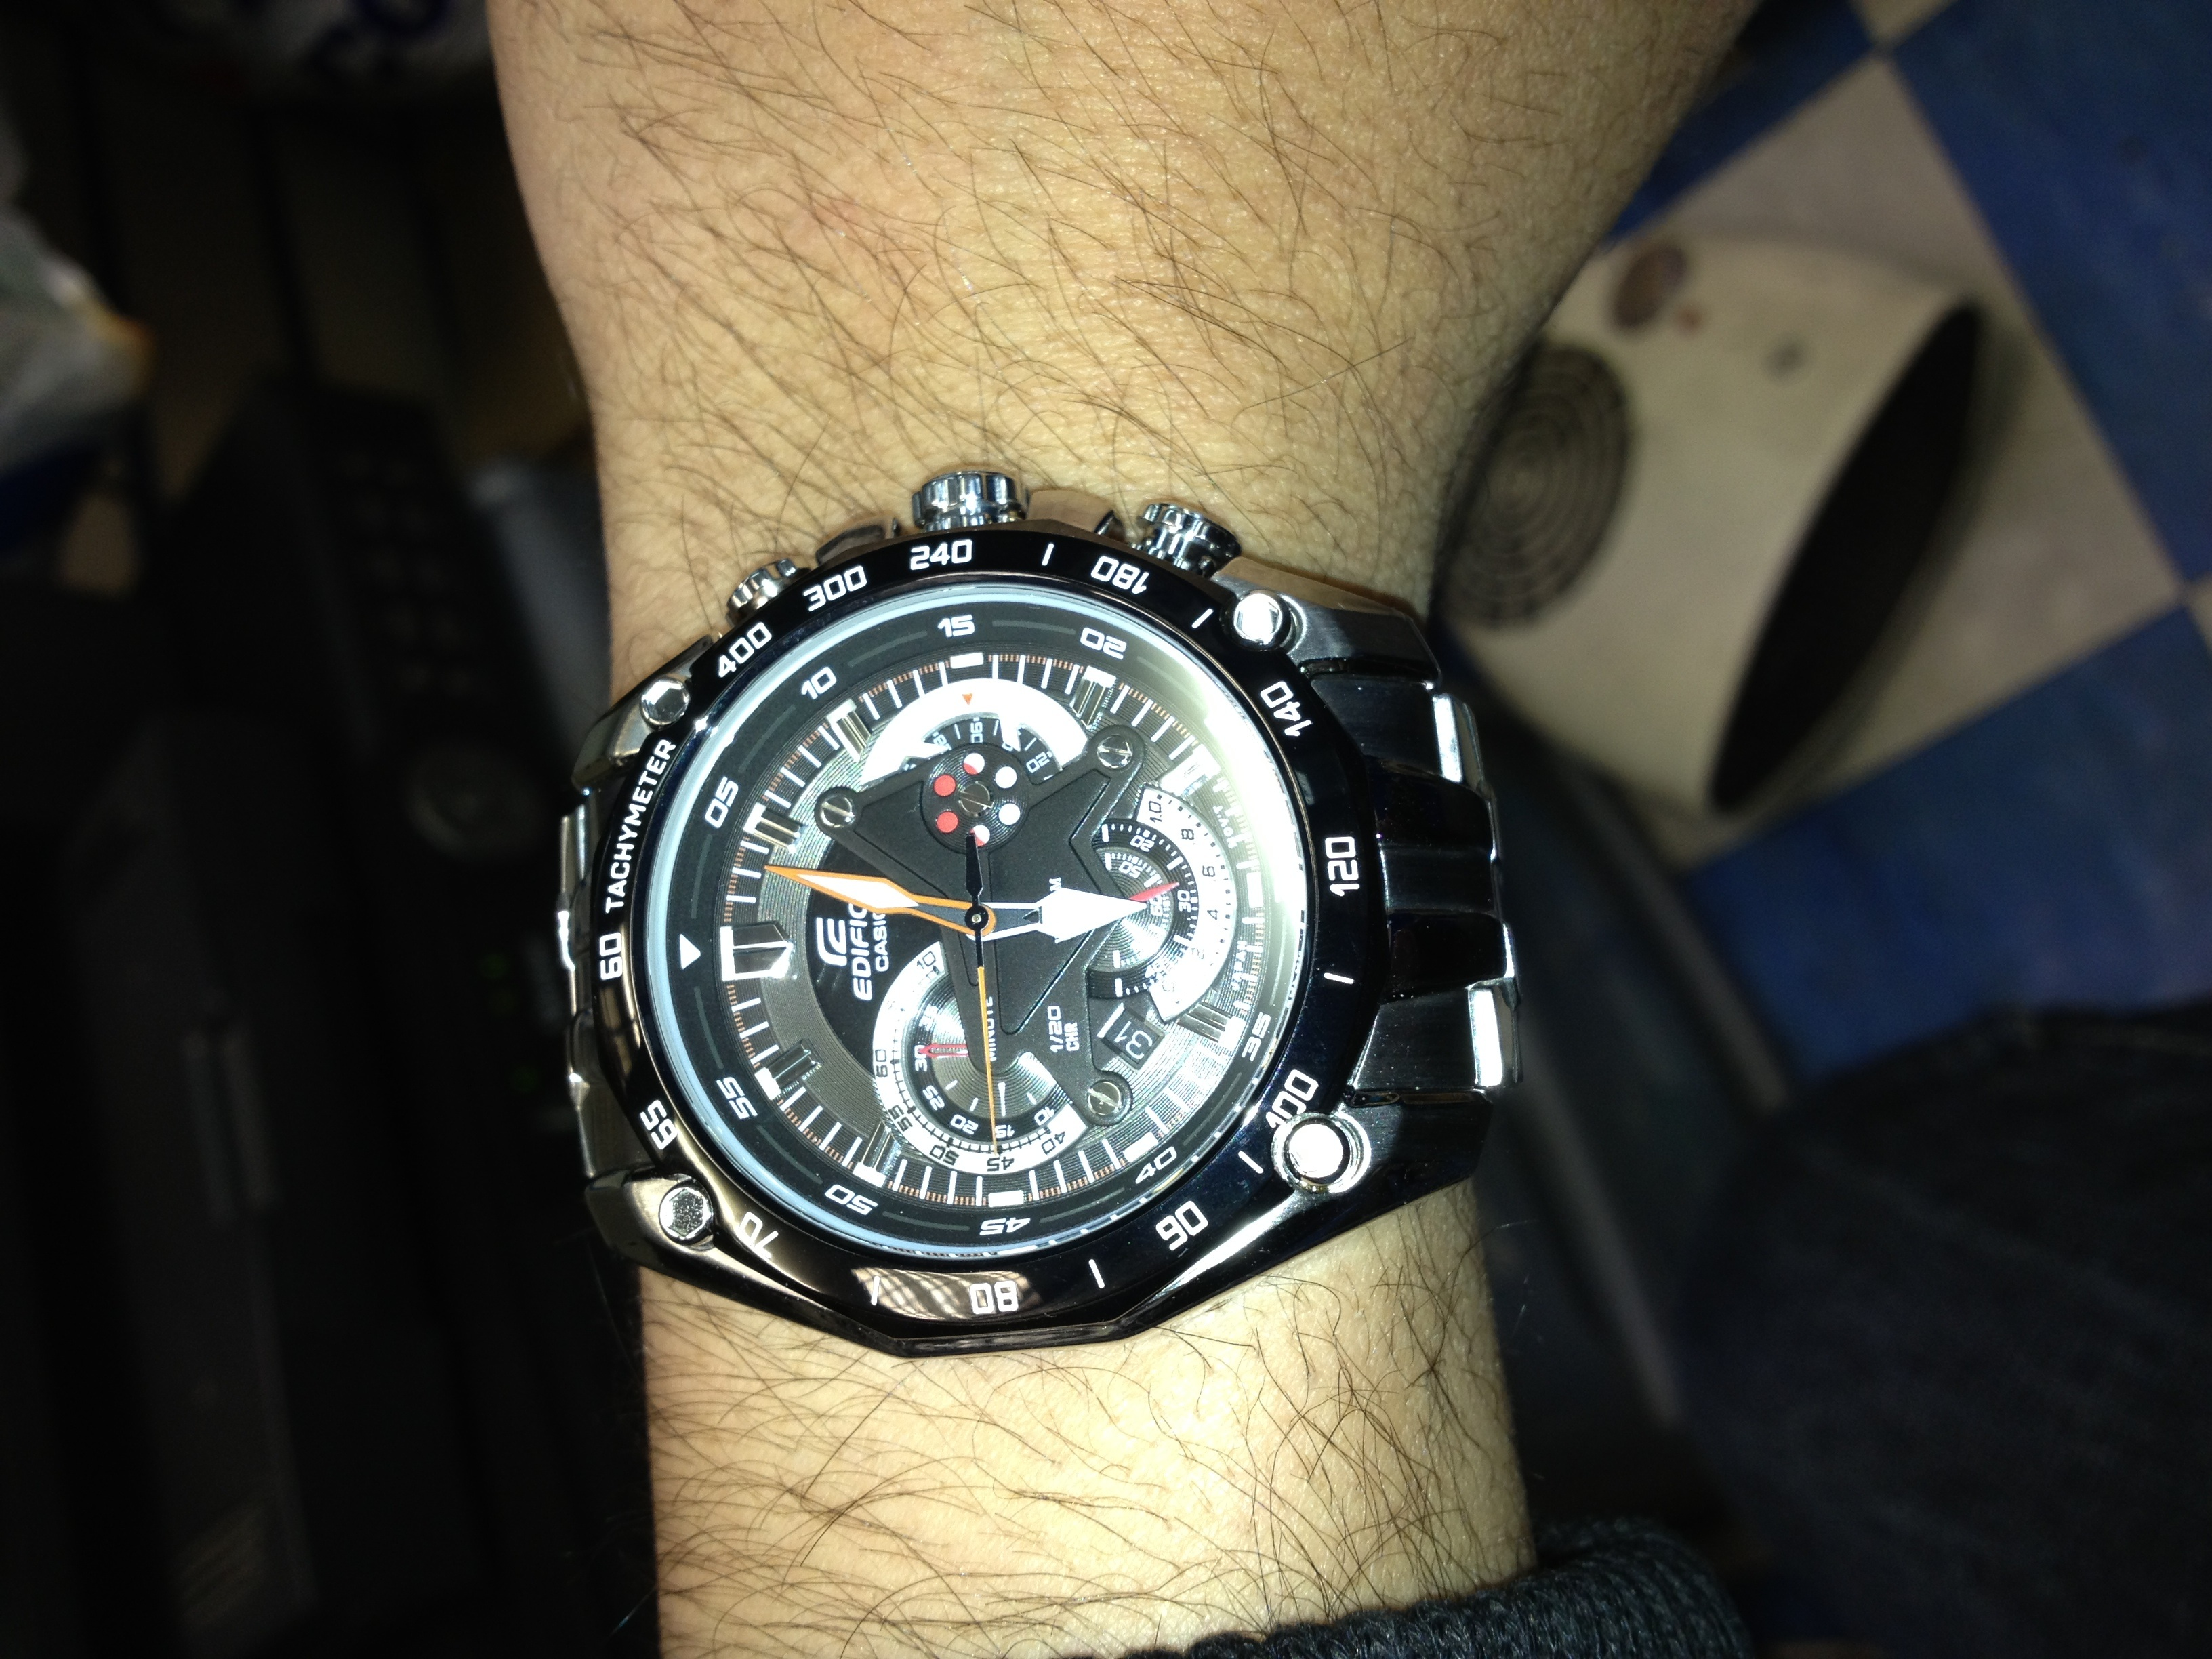 f7b1d6c4f Gents Casio Edifice Exclusive Chronograph Watch (EF-550D-1AVEF) |  WatchShop.com™